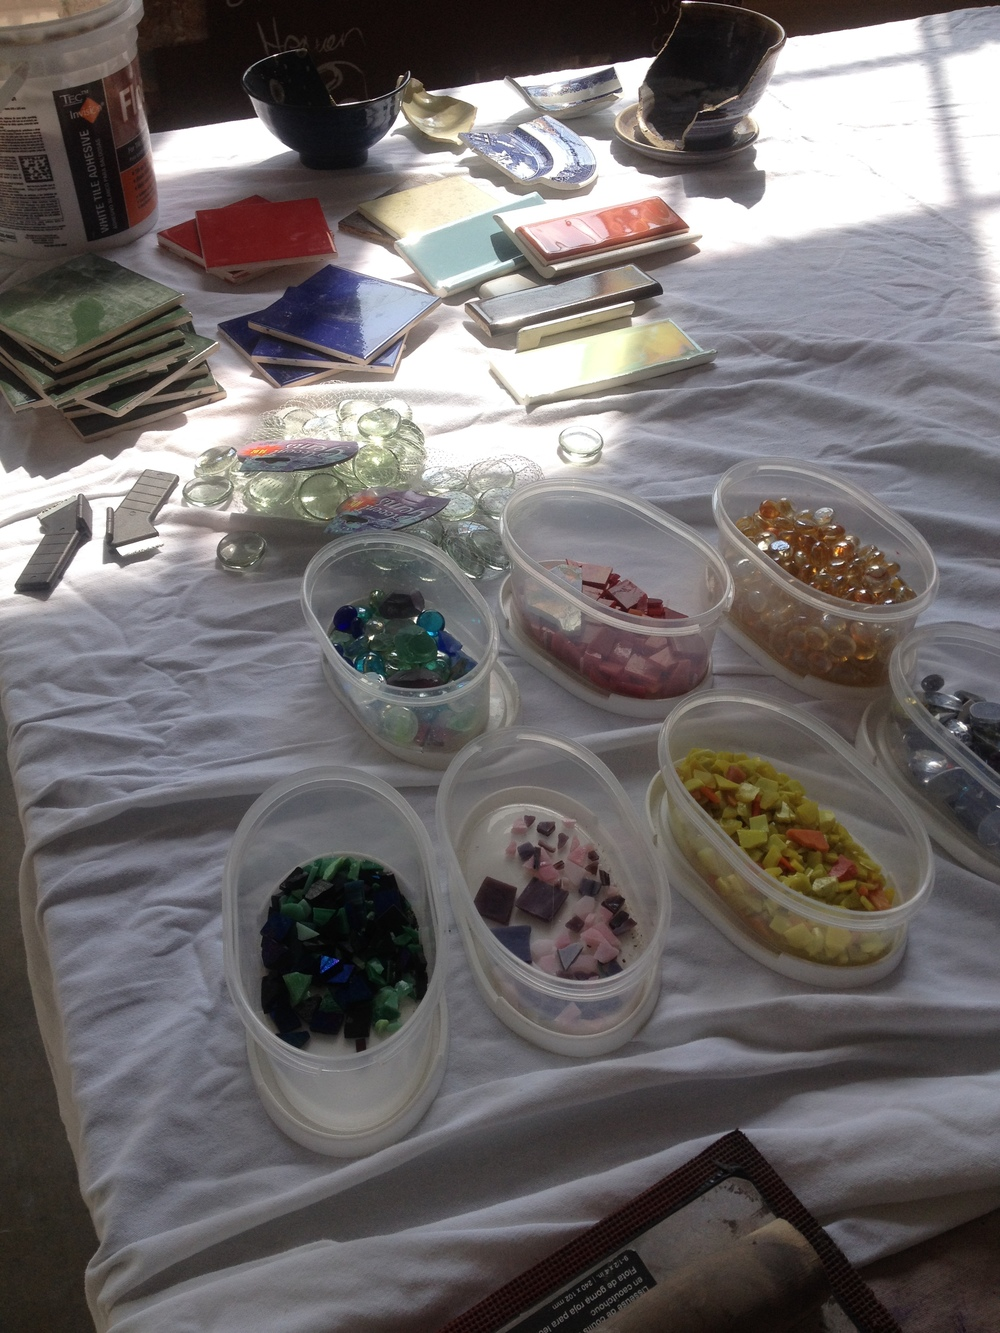 We worked with a mix of stained glass mosiac tiles, glass marbles, ceramic tiles, and reclaimed ceramic dishes.